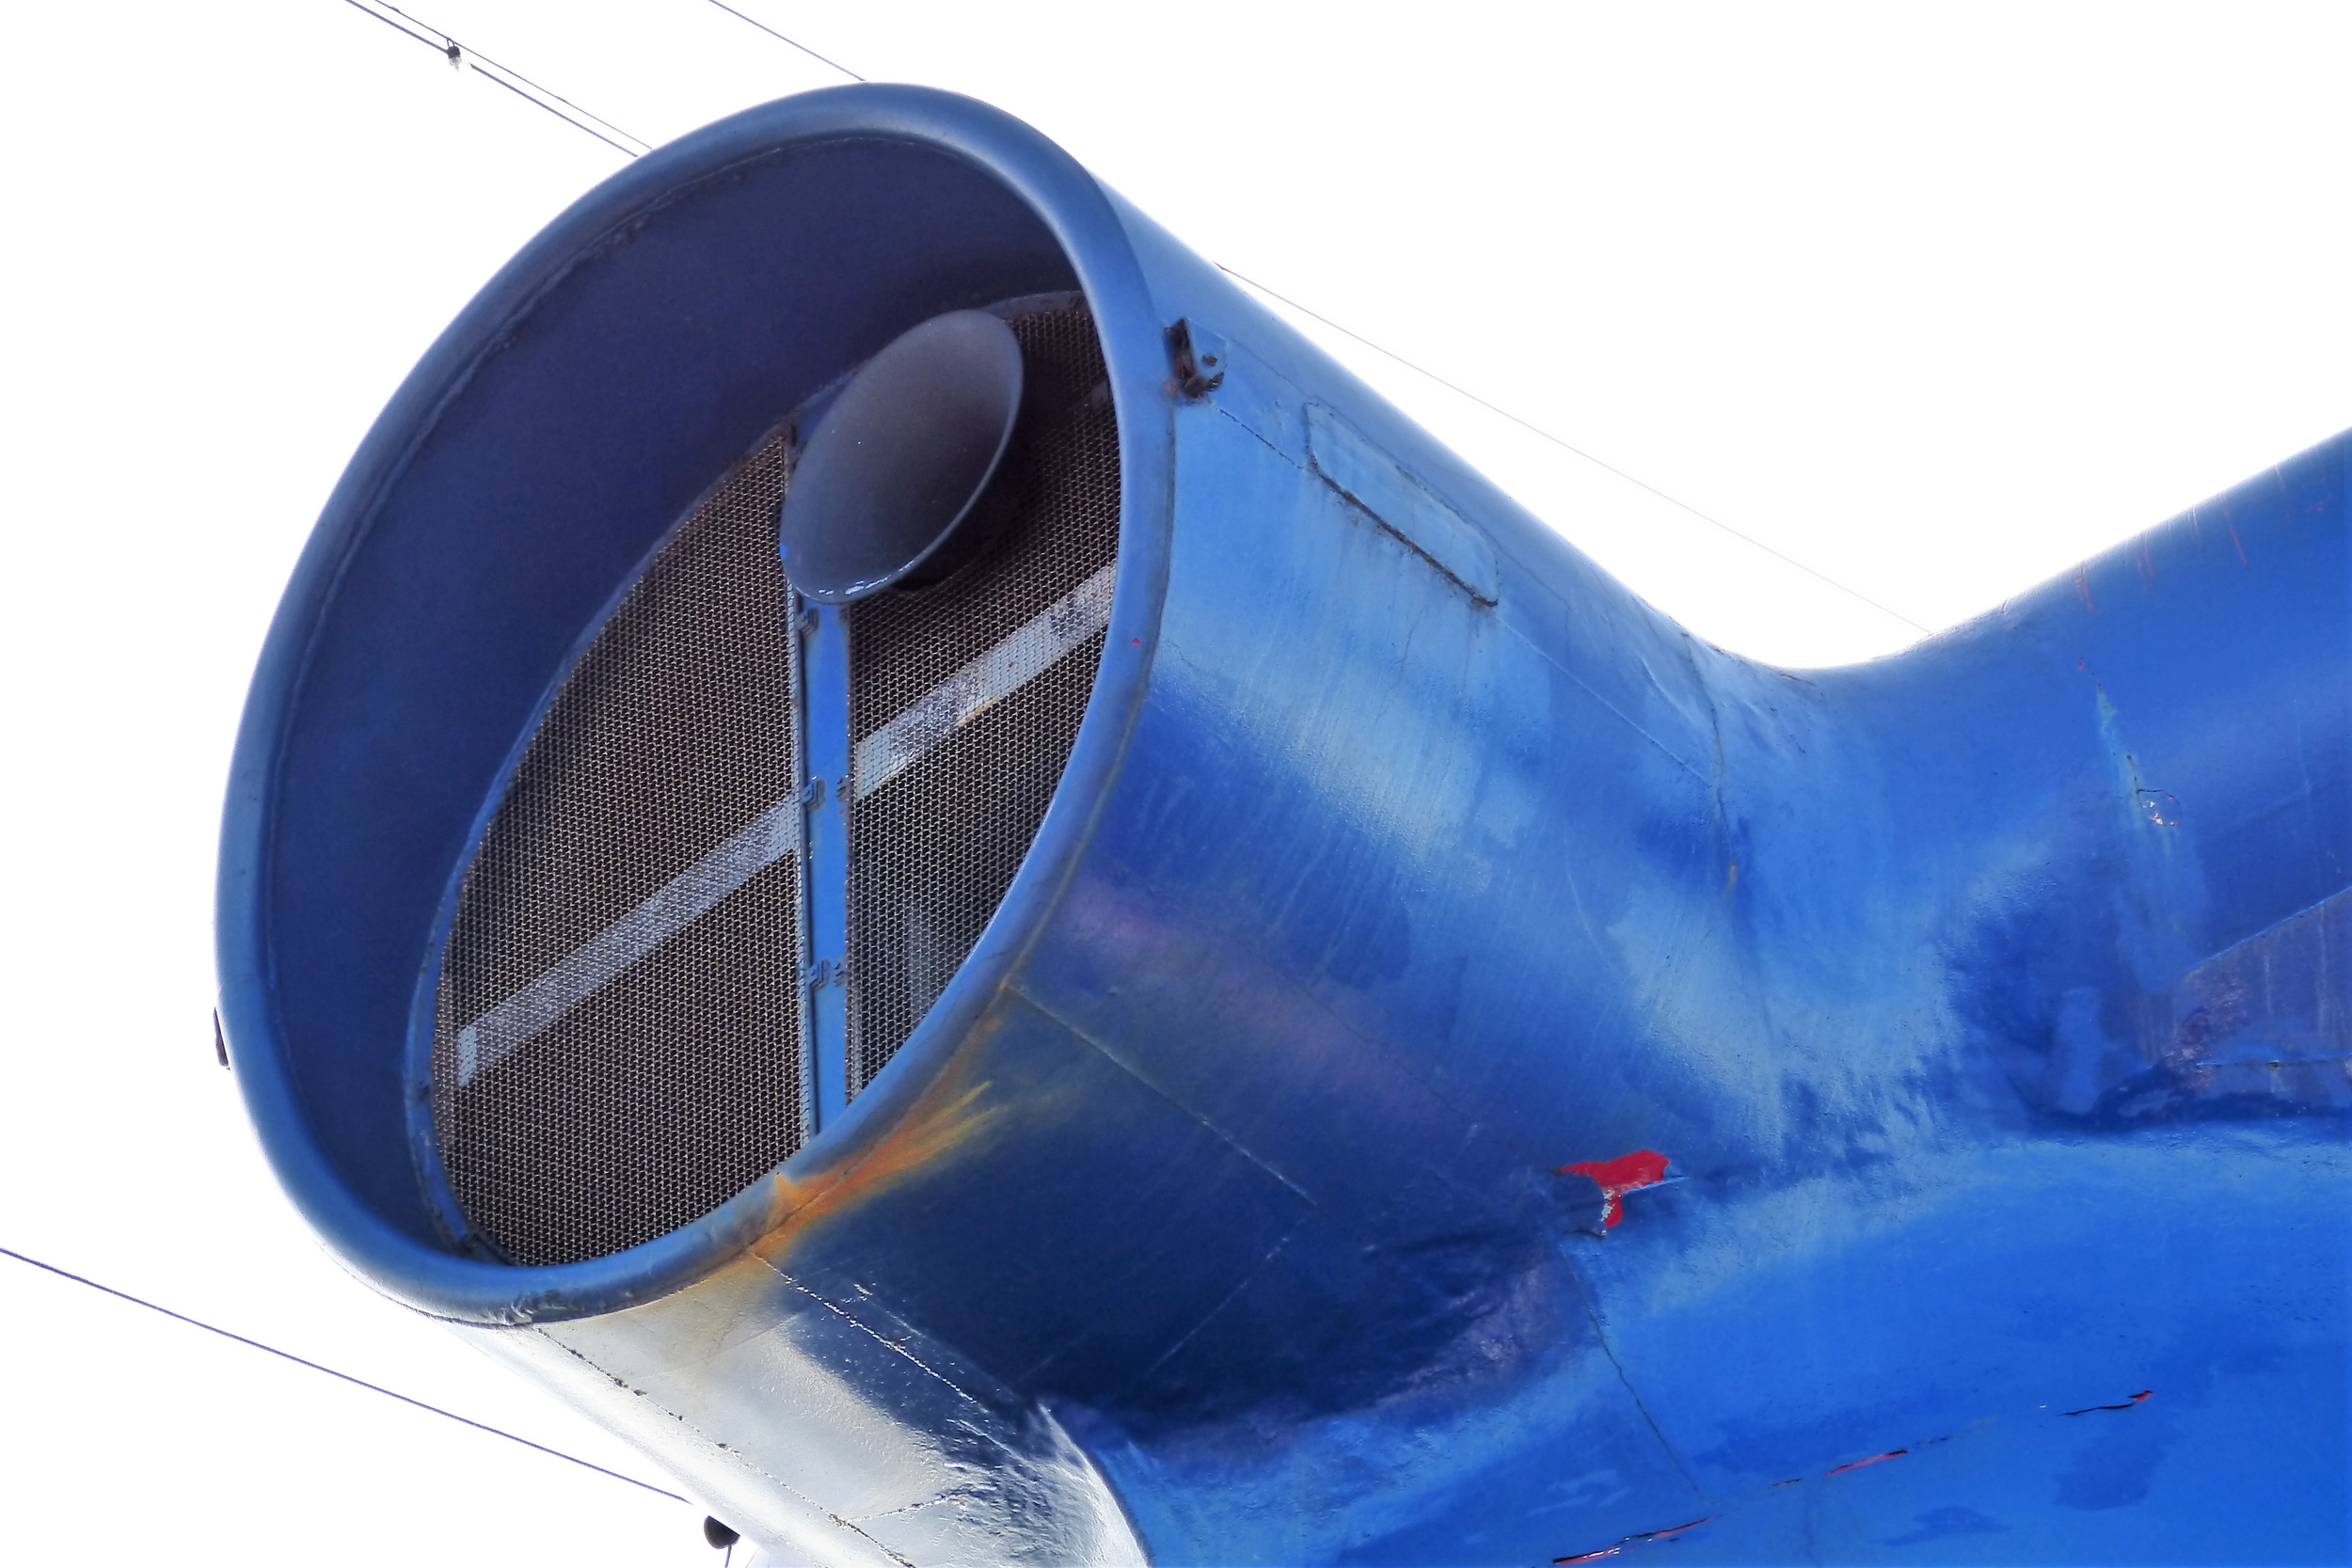 Under the funnel air intake, the blue paint is peeling to reveal the original Carnival red.